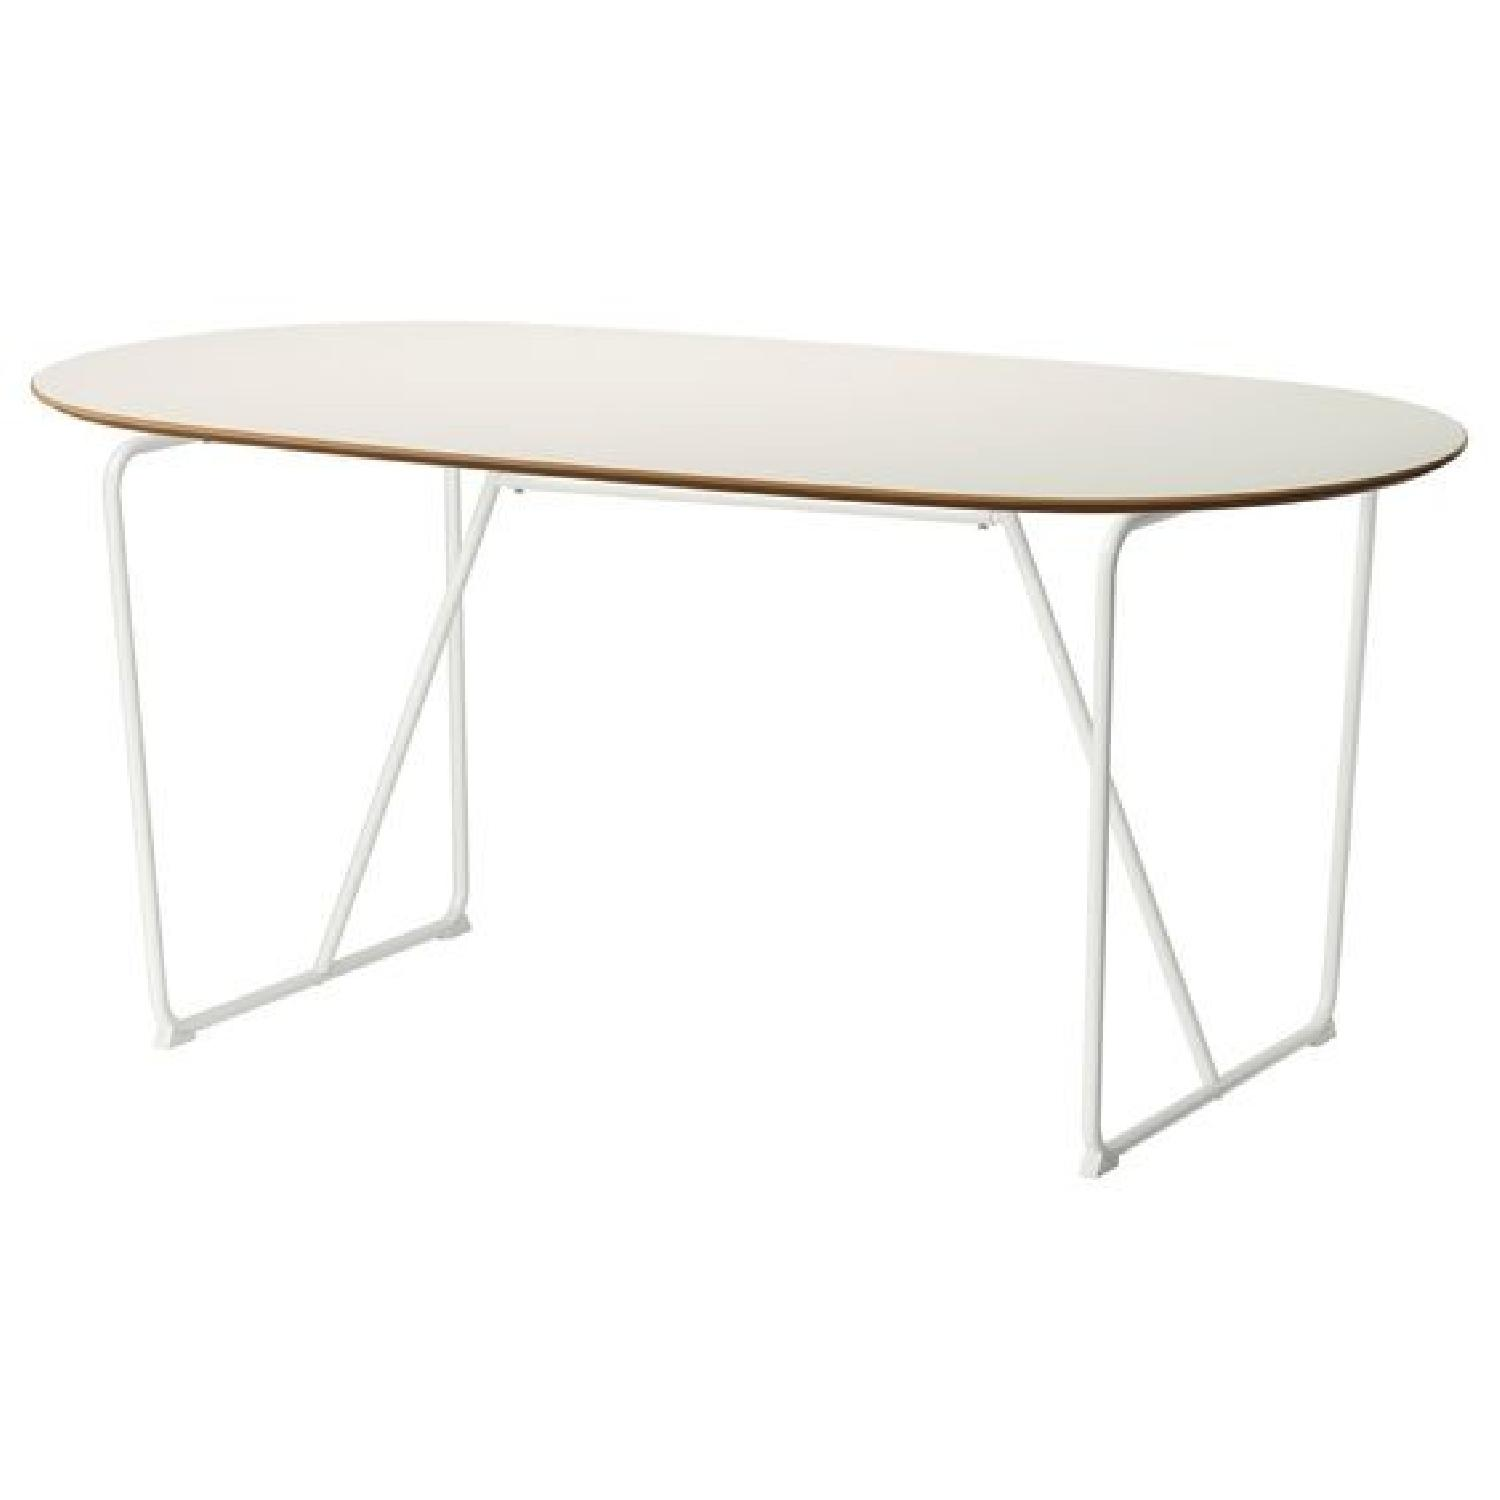 Ikea Slahult/Backaryd Dining Table